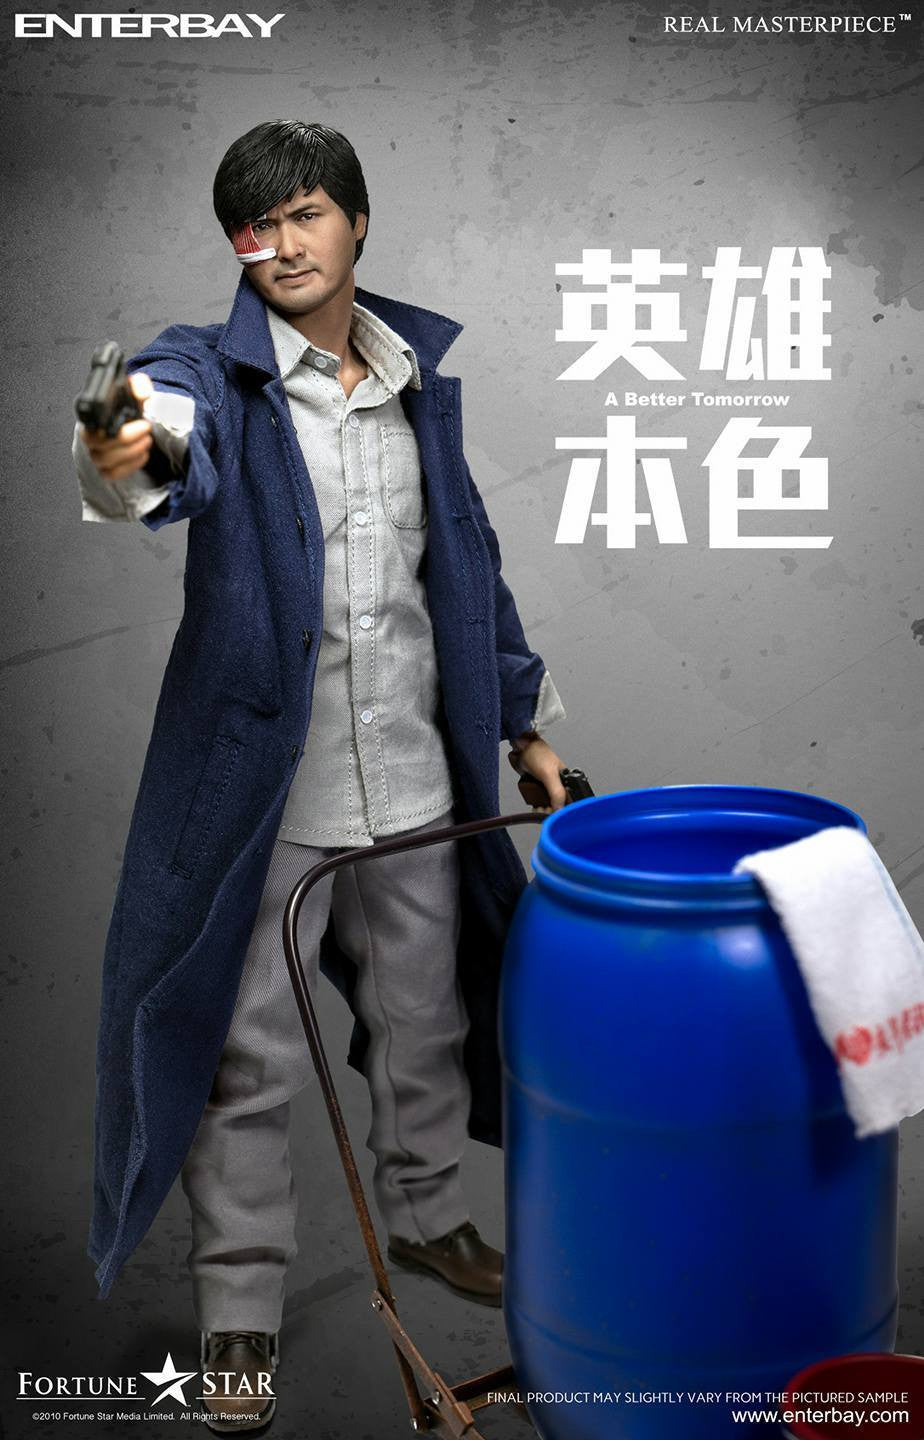 Enterbay - 1/6 A Better Tomorrow 英雄本色 - Mark哥 (Chow Yun Fatt/周润发) - Marvelous Toys - 8